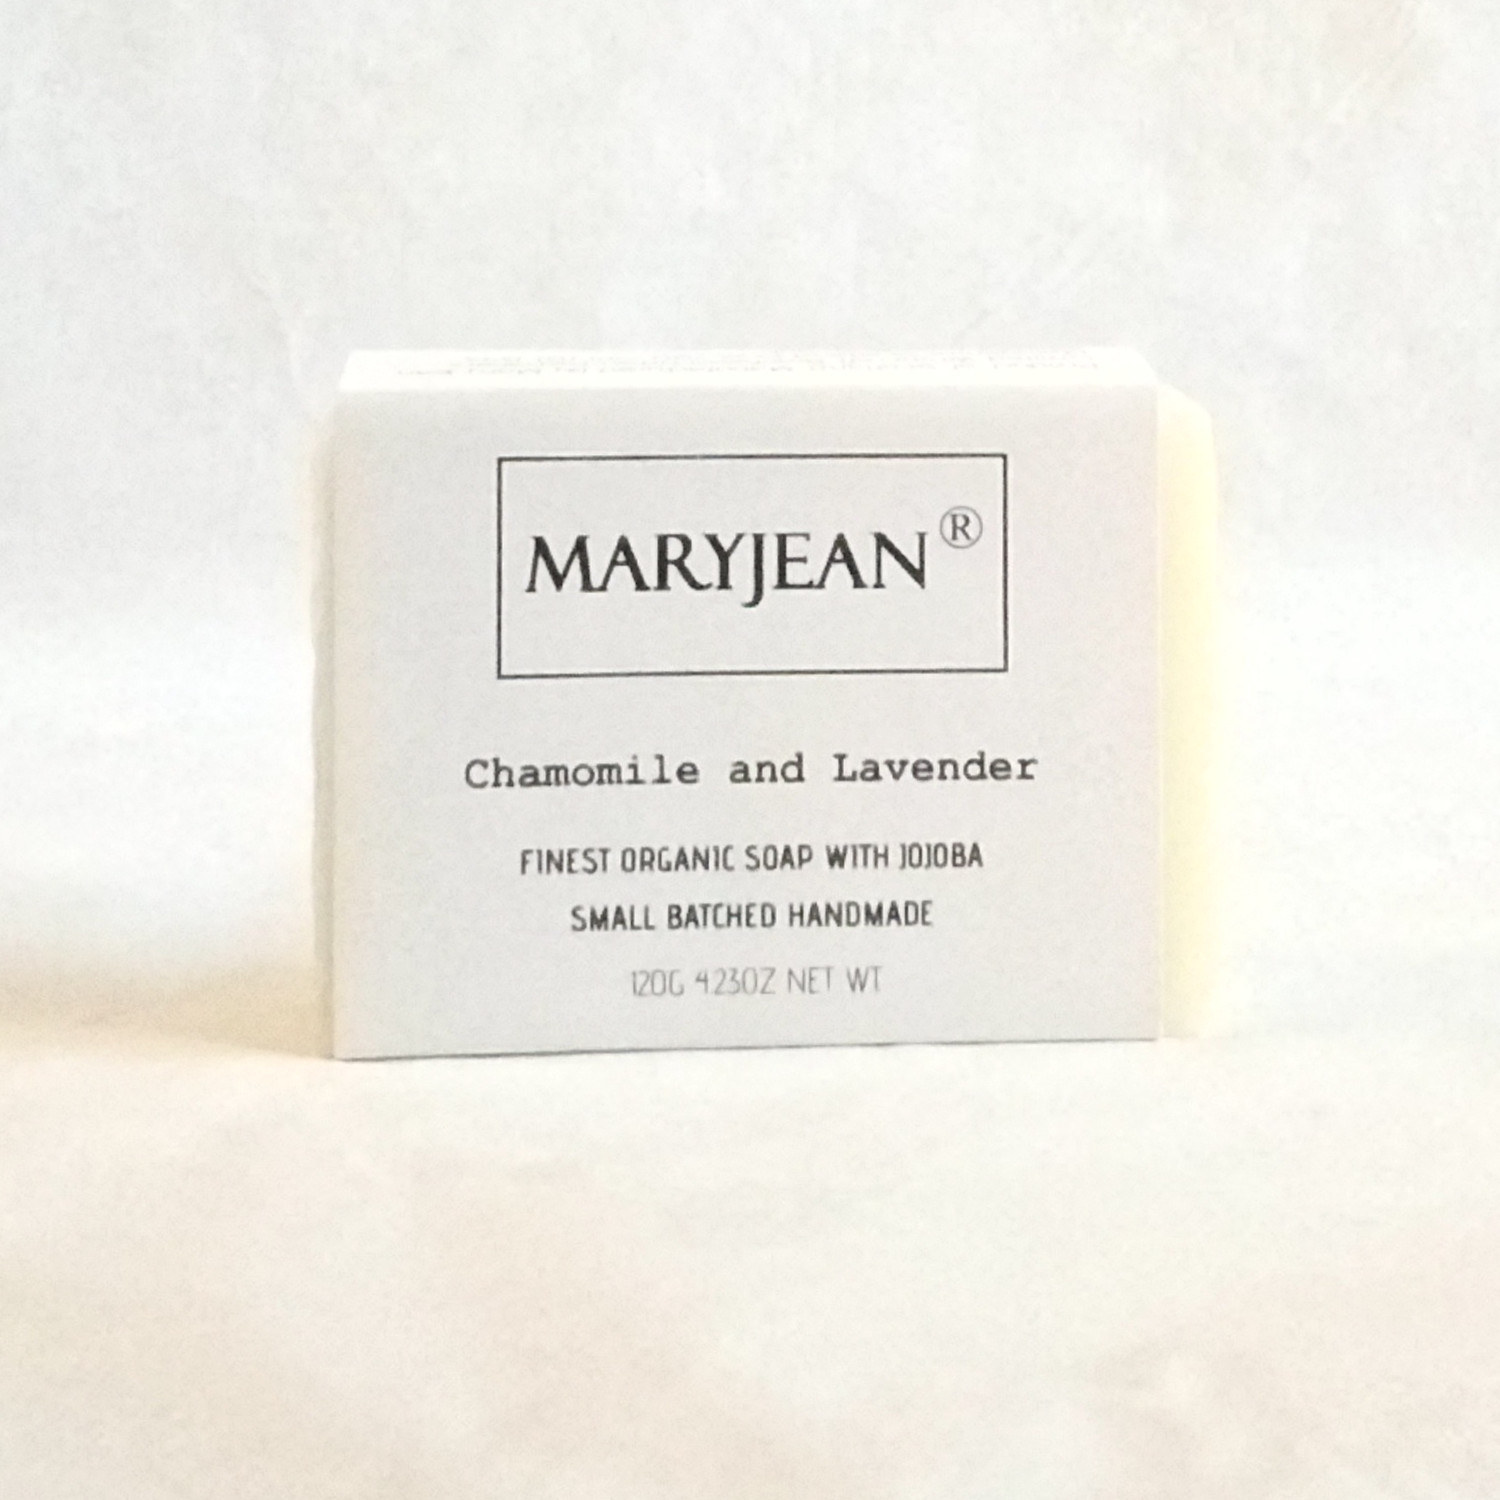 An excellent choice for treating sun burnt skin this summer this bar of soap is sensitive enough for every day use with Jojoba for healthier skin Organic Scottish Chamomile Lavender Facial Cleansing Soap Handmade With Jojoba